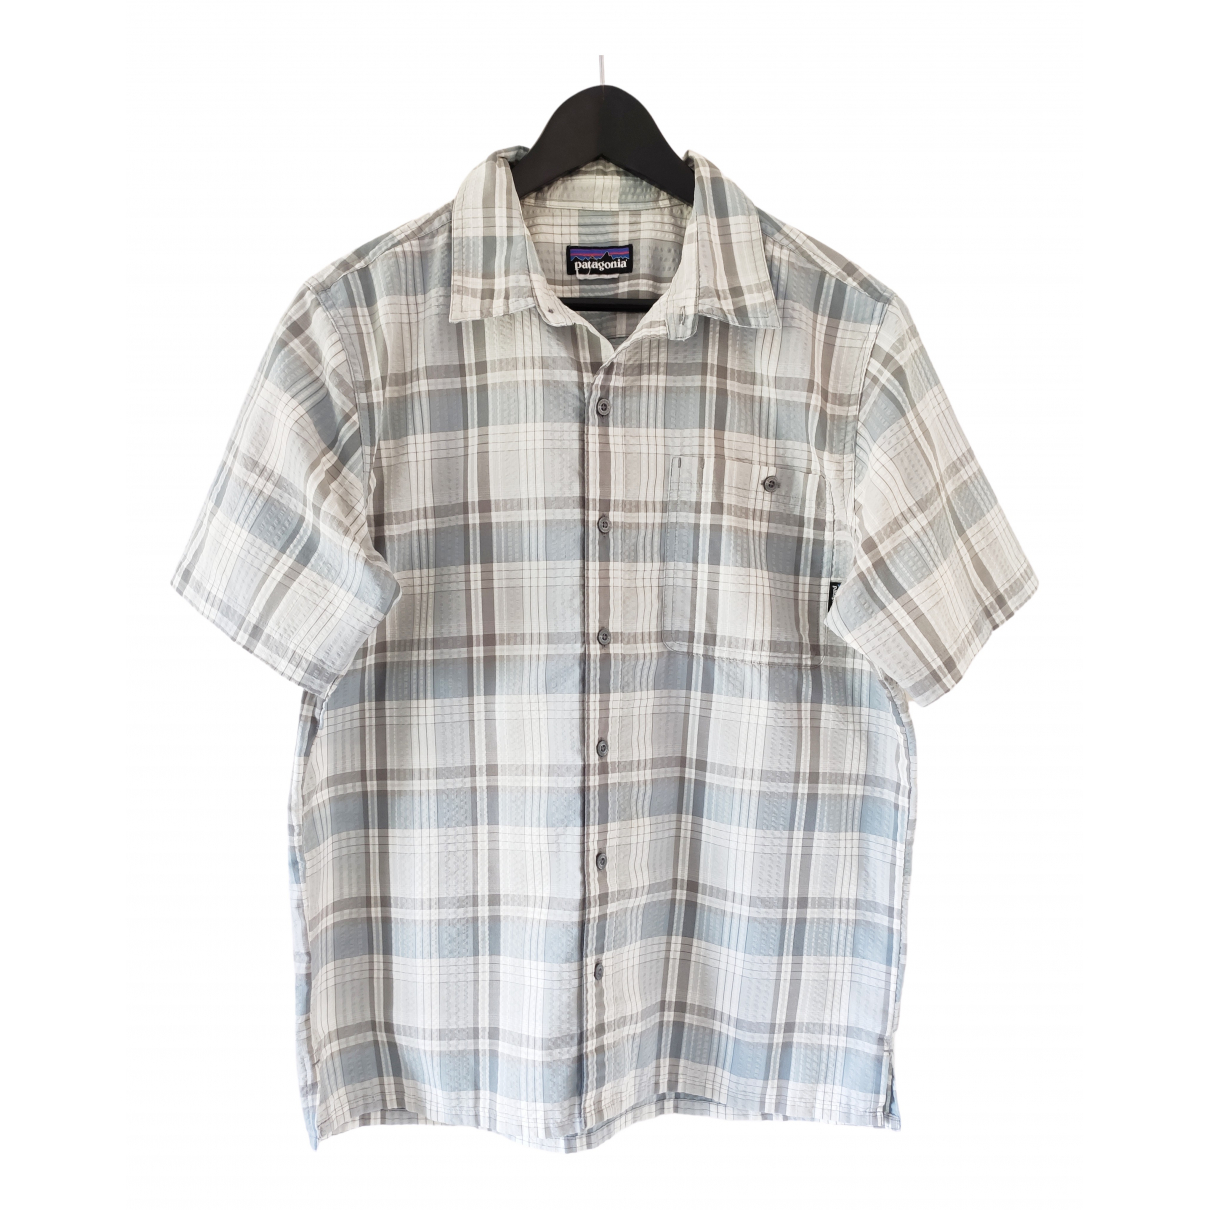 Patagonia \N Grey Cotton Shirts for Men L International